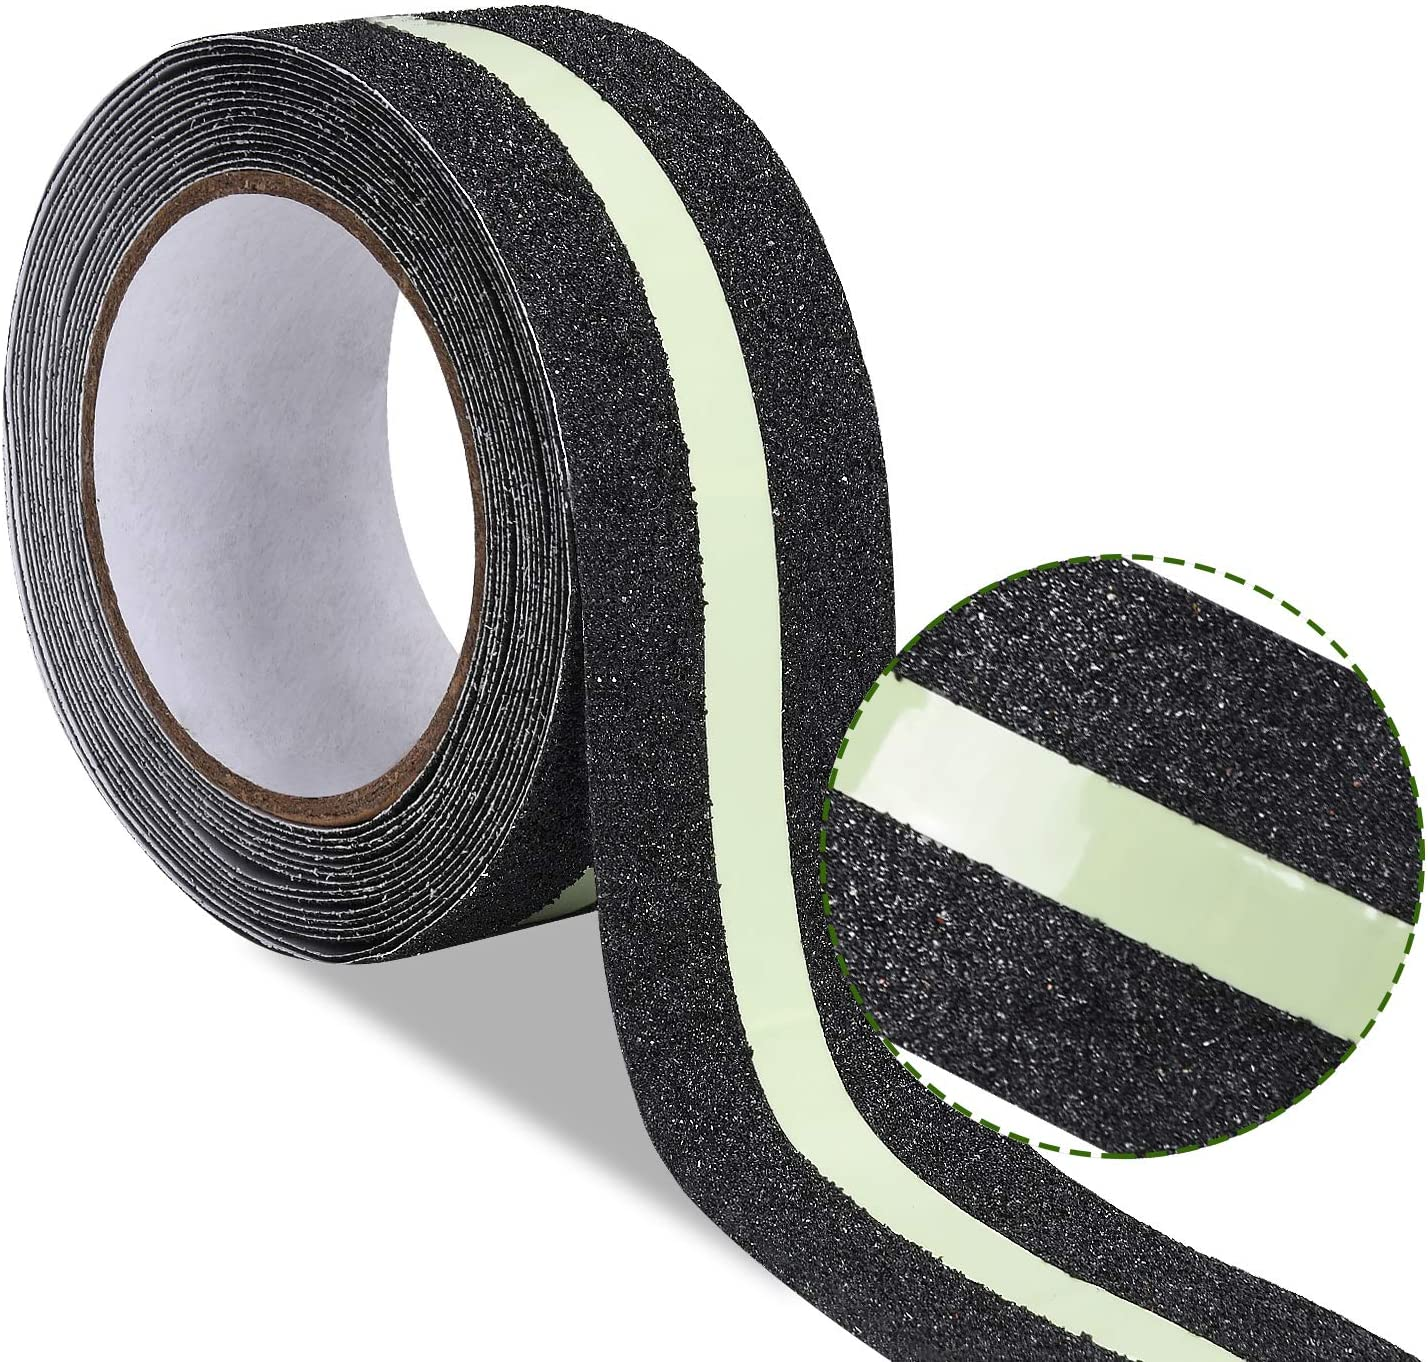 Anti Slip Grip New Free Shipping Tape 2'' Wide Traction Long Non-Slip Ta x Rapid rise 16.4ft